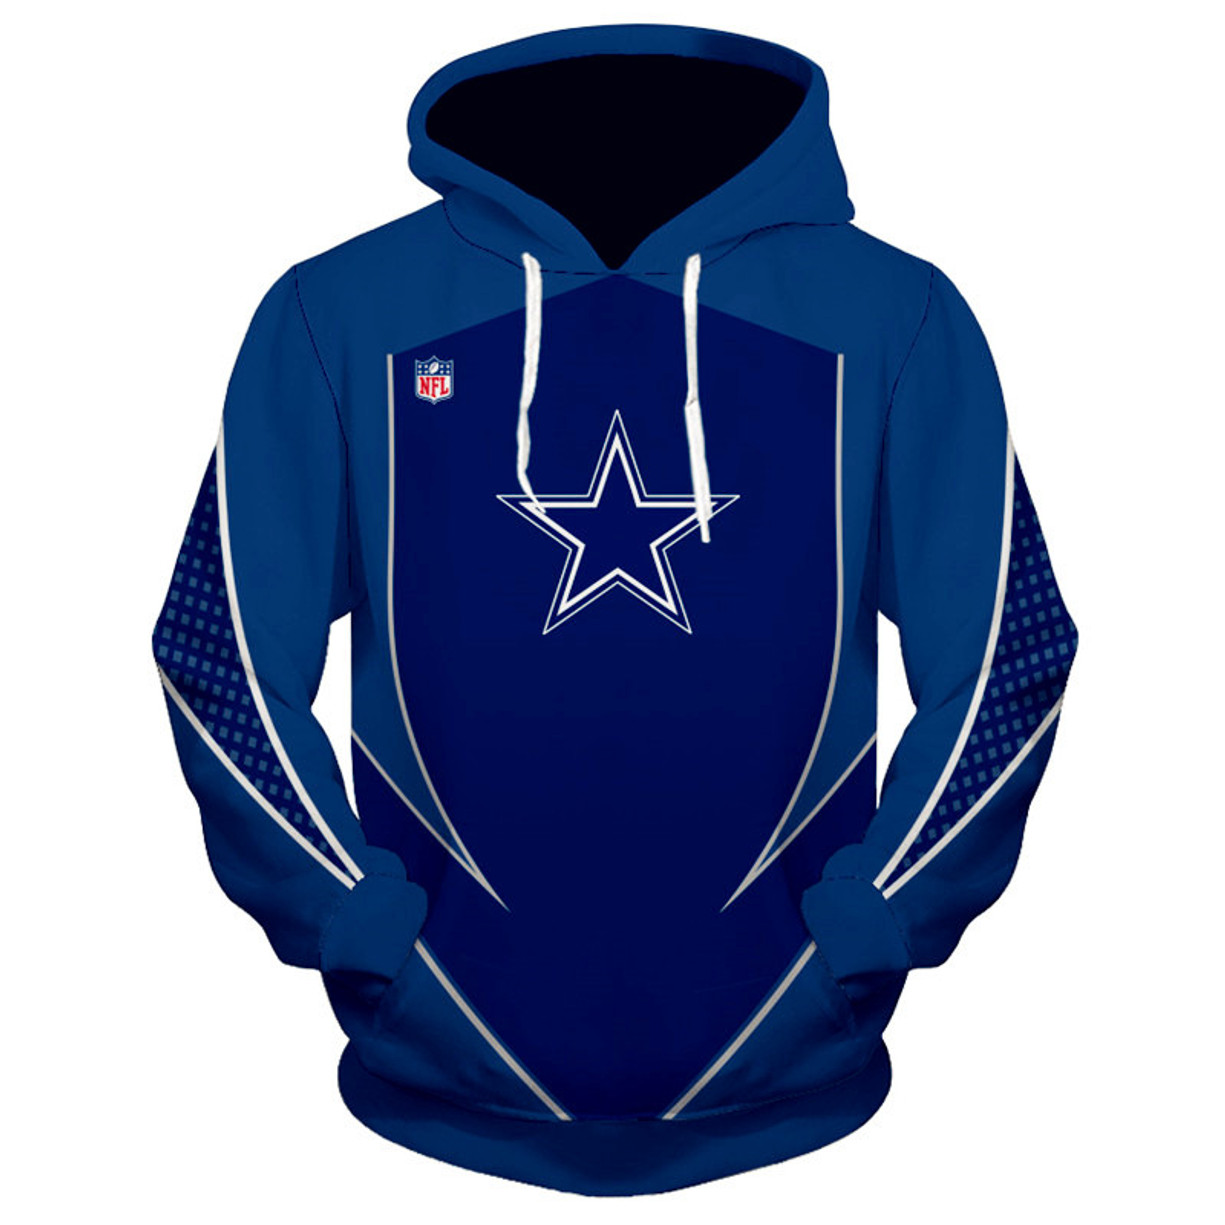 5e584ba3 OFFICIALLY-LICENSED-N.F.L. DALLAS-COWBOYS-TEAM-PULLOVER-HOODIES/NICE ...